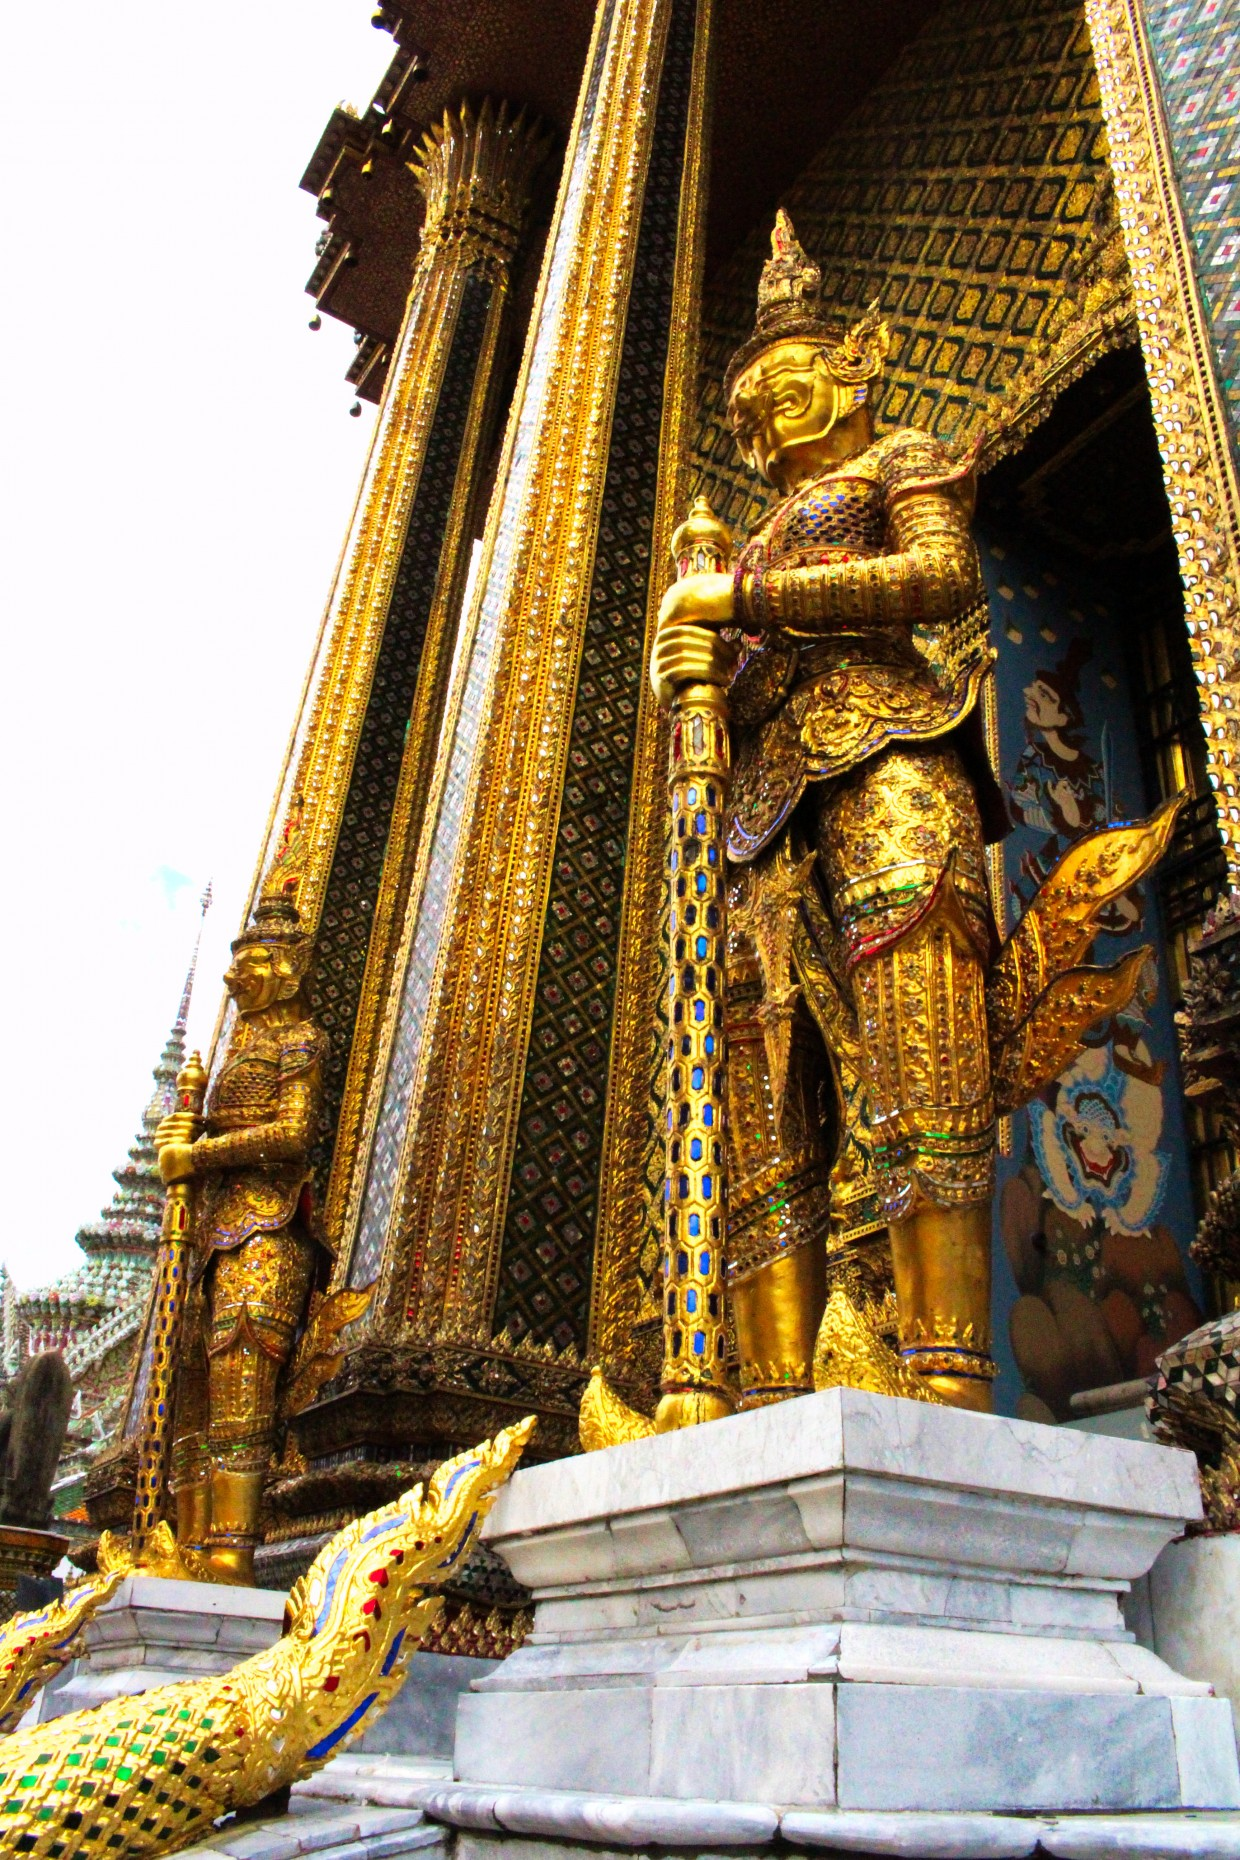 Statue at the Grand Palace